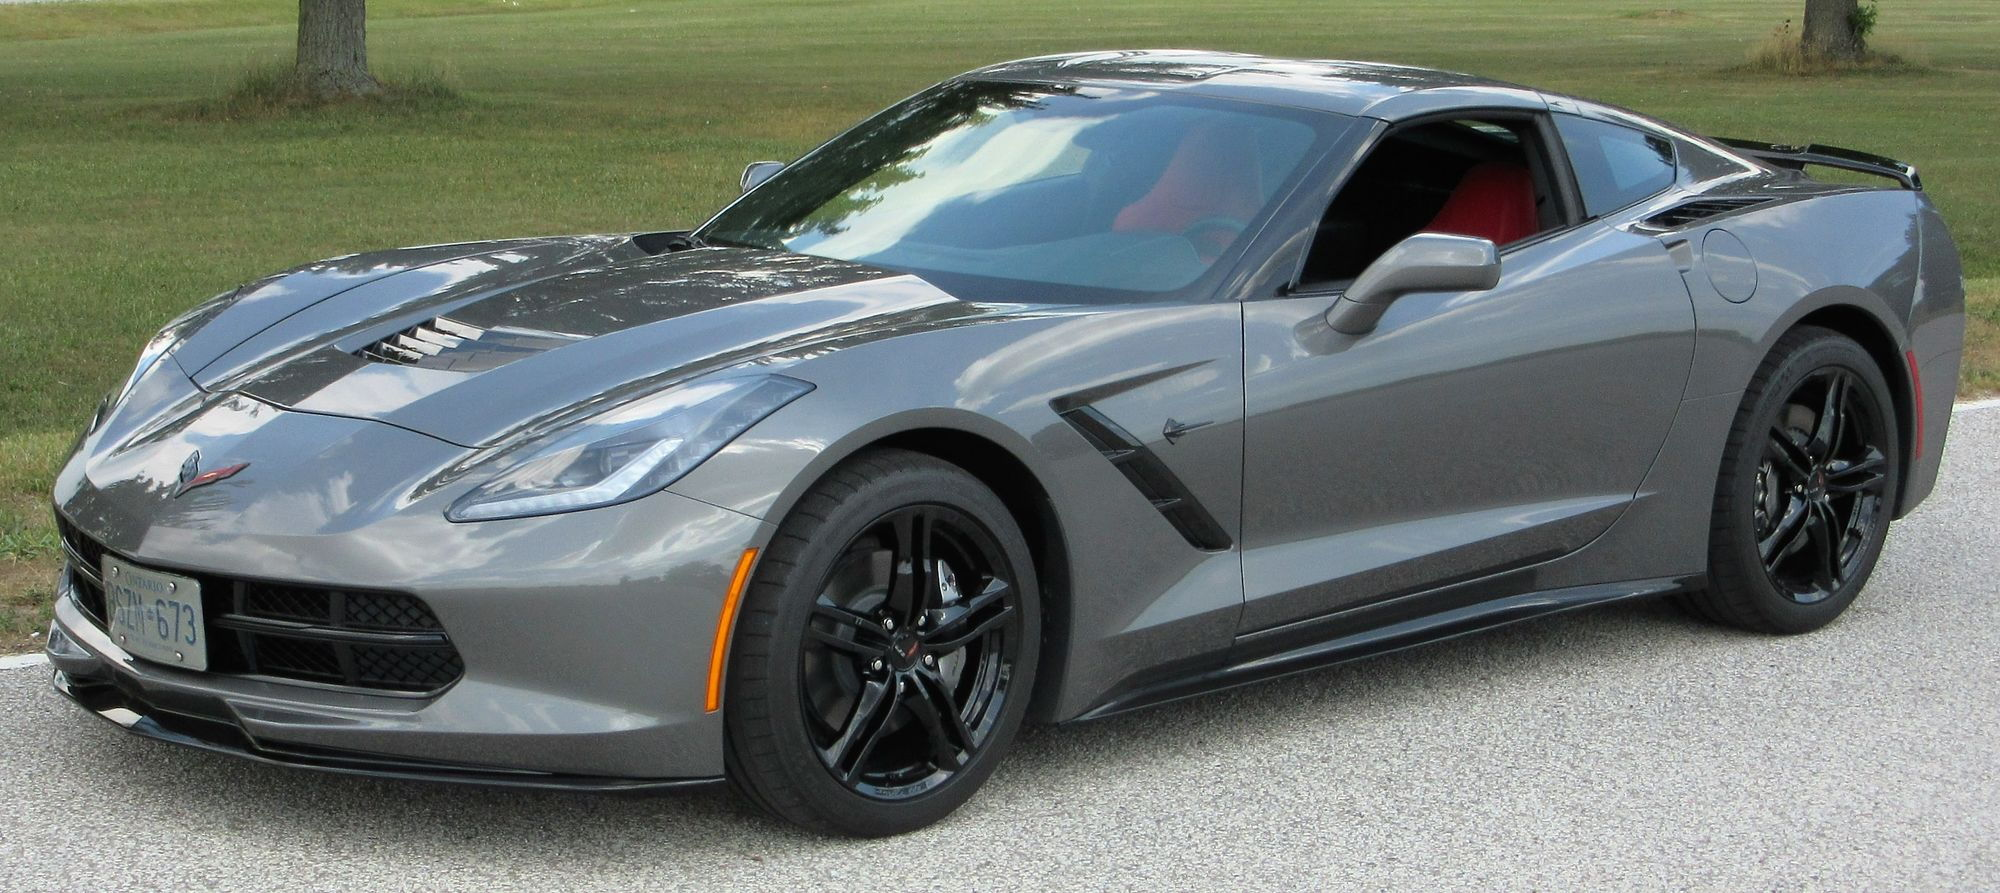 Profitable cryptocurrency 2021 corvette proof of burn crypto currency investments